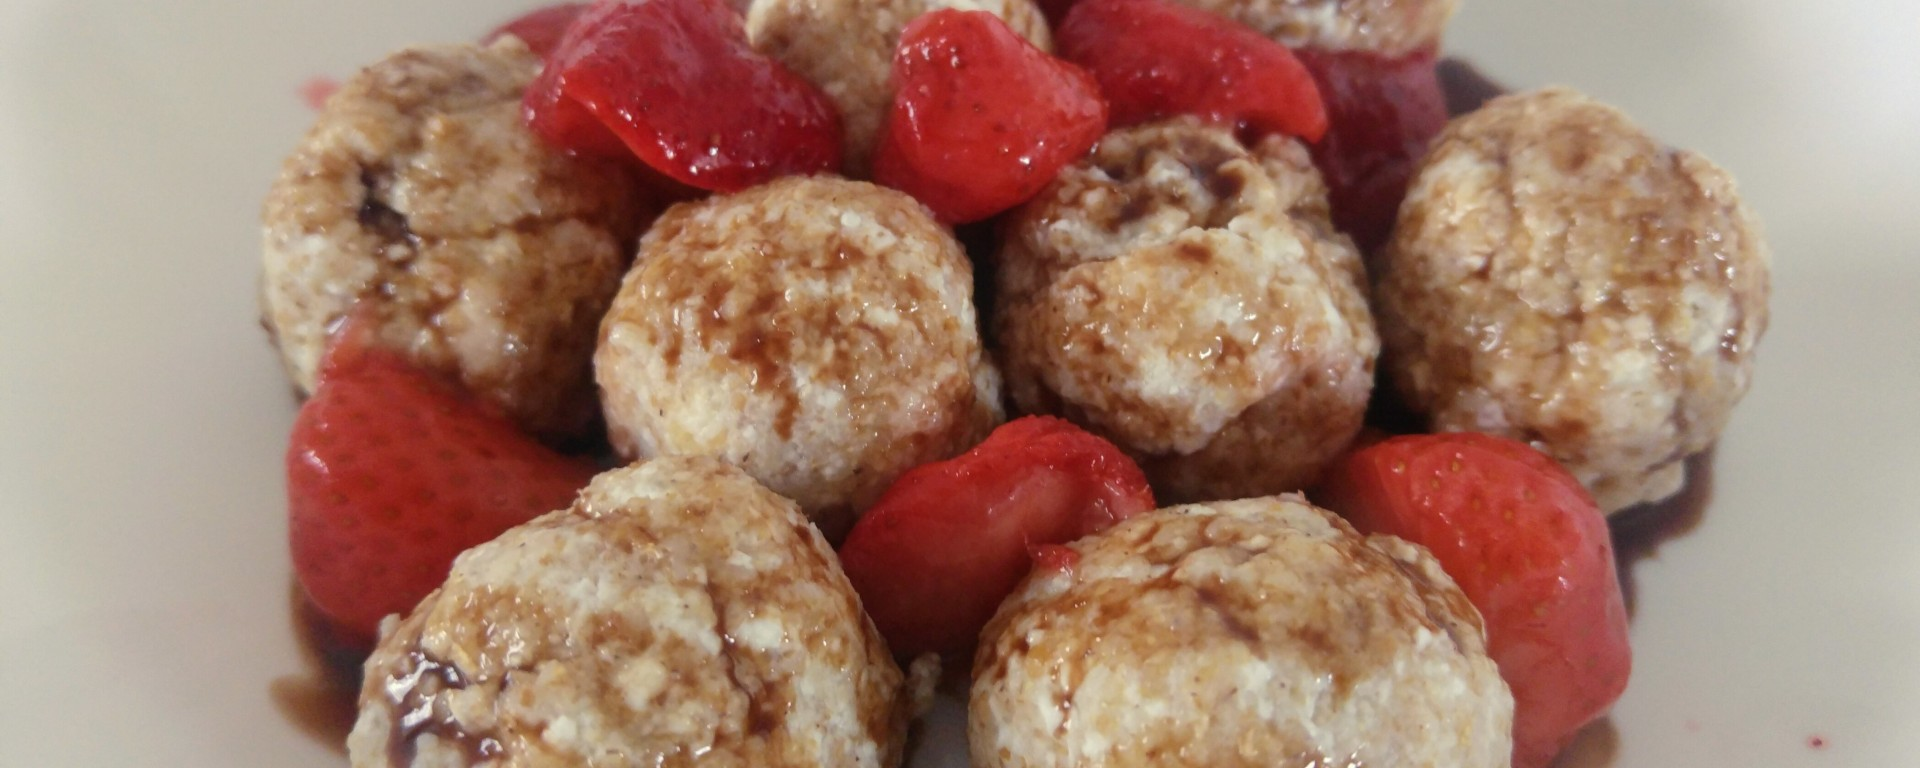 Kopytka - quark cheese dumplings - on a plate with strawberries and chocolate